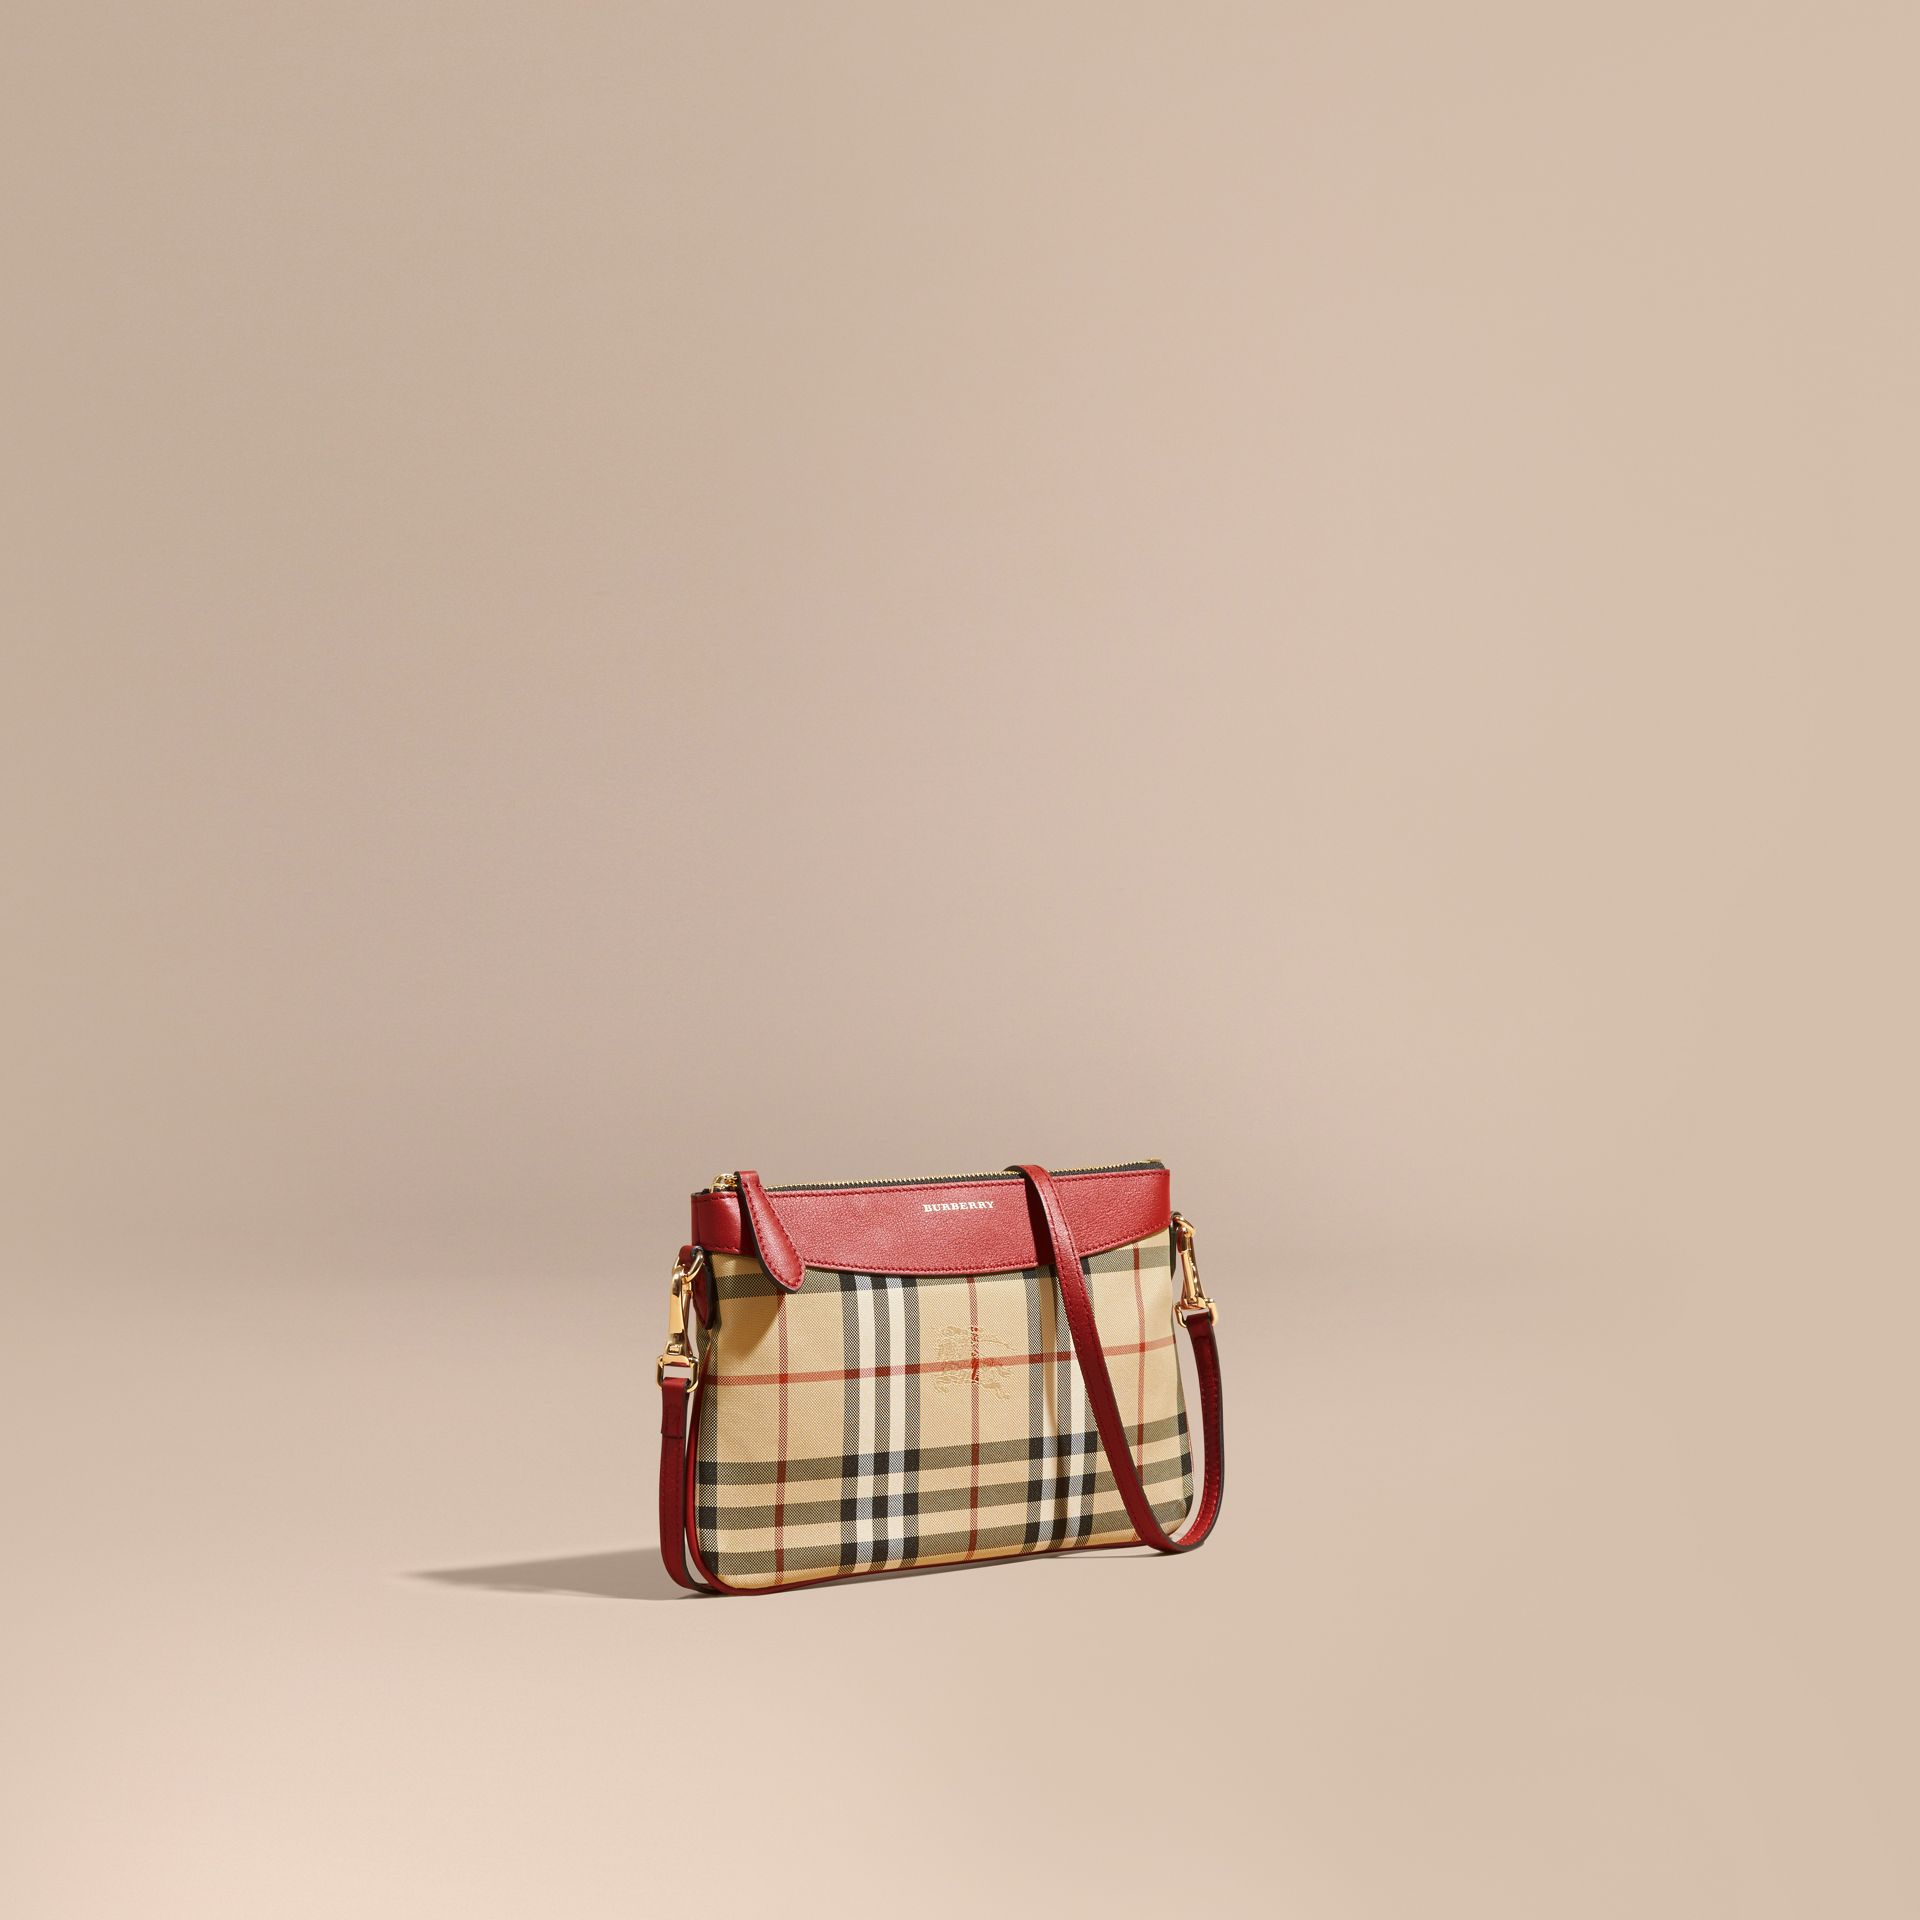 Horseferry Check and Leather Clutch Bag in Parade Red - Women | Burberry - gallery image 1